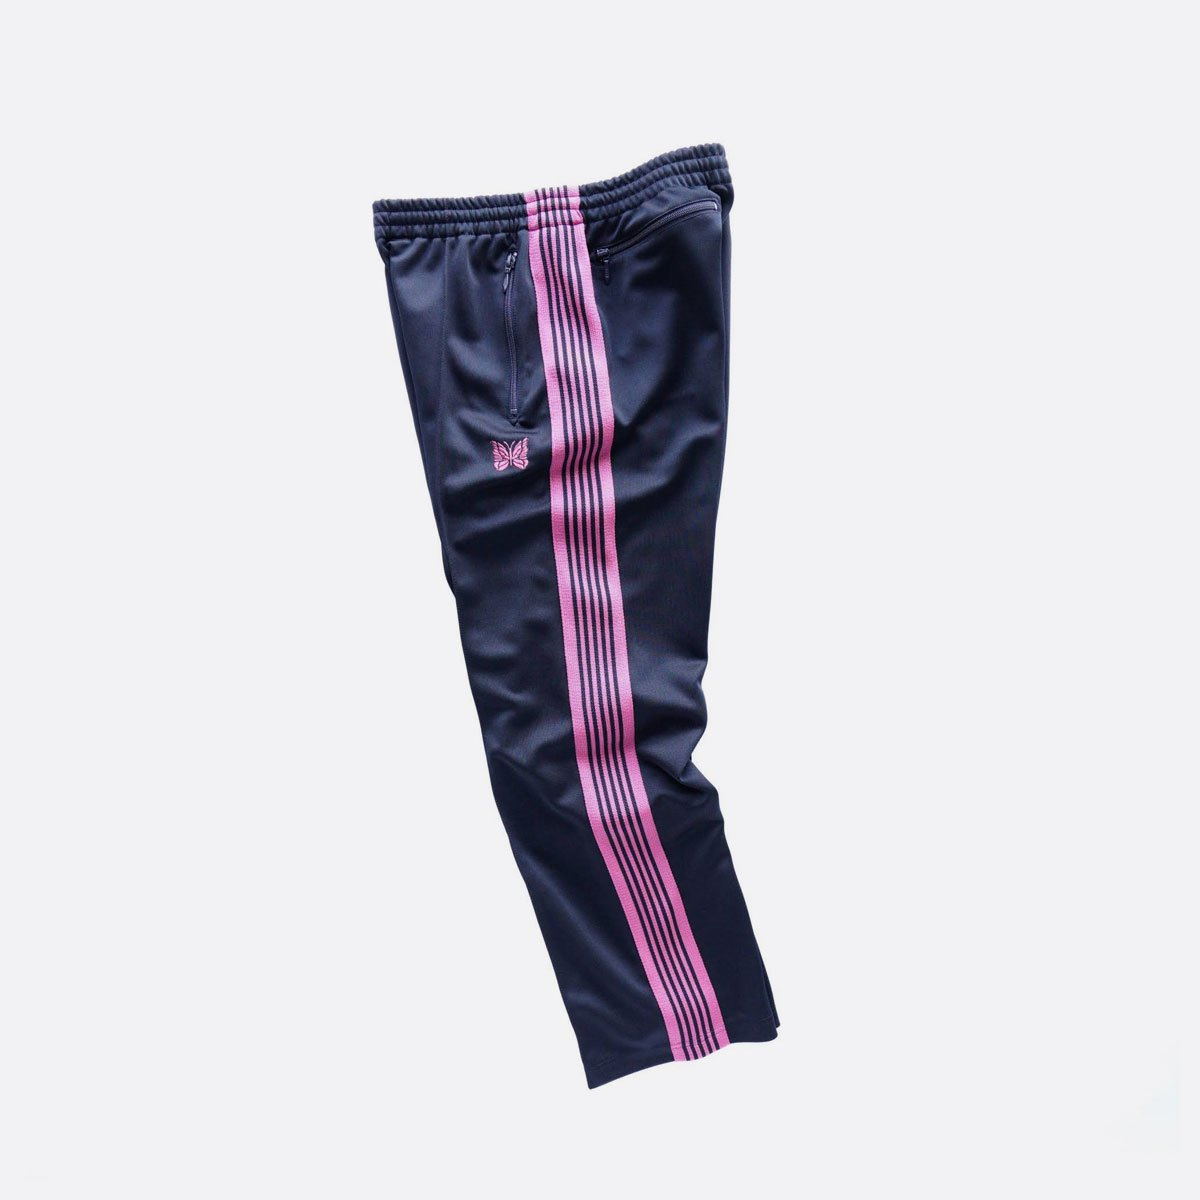 NEEDLES  TRACK PANT - POLY SMOOTH  (Navy)3